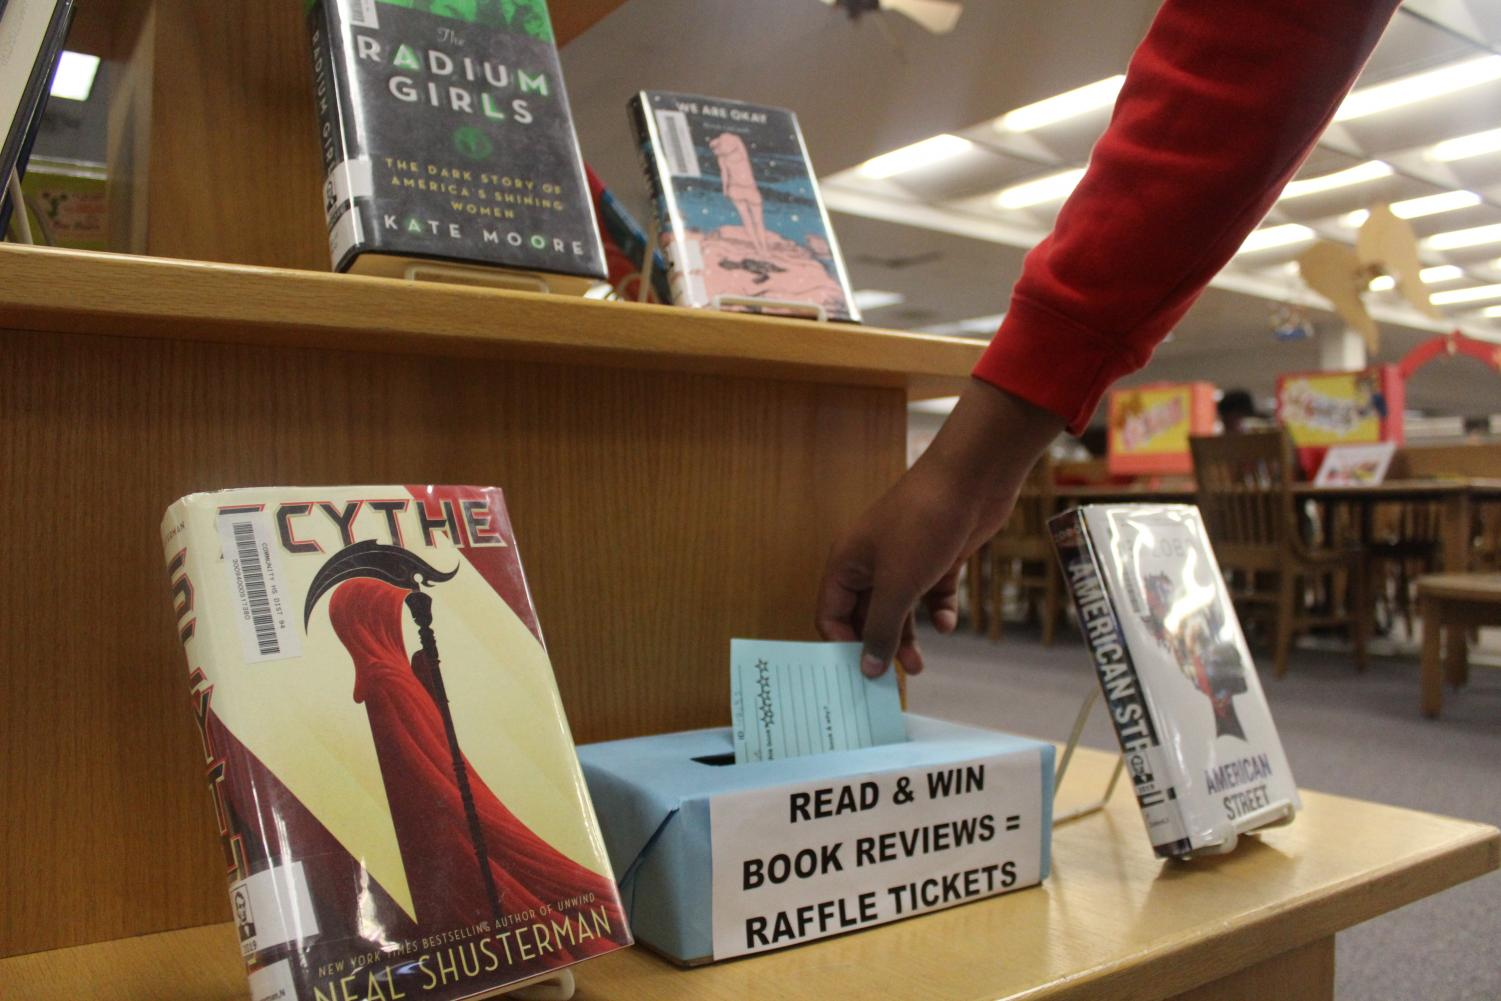 Students can submit their book reviews for a chance to win a gift card